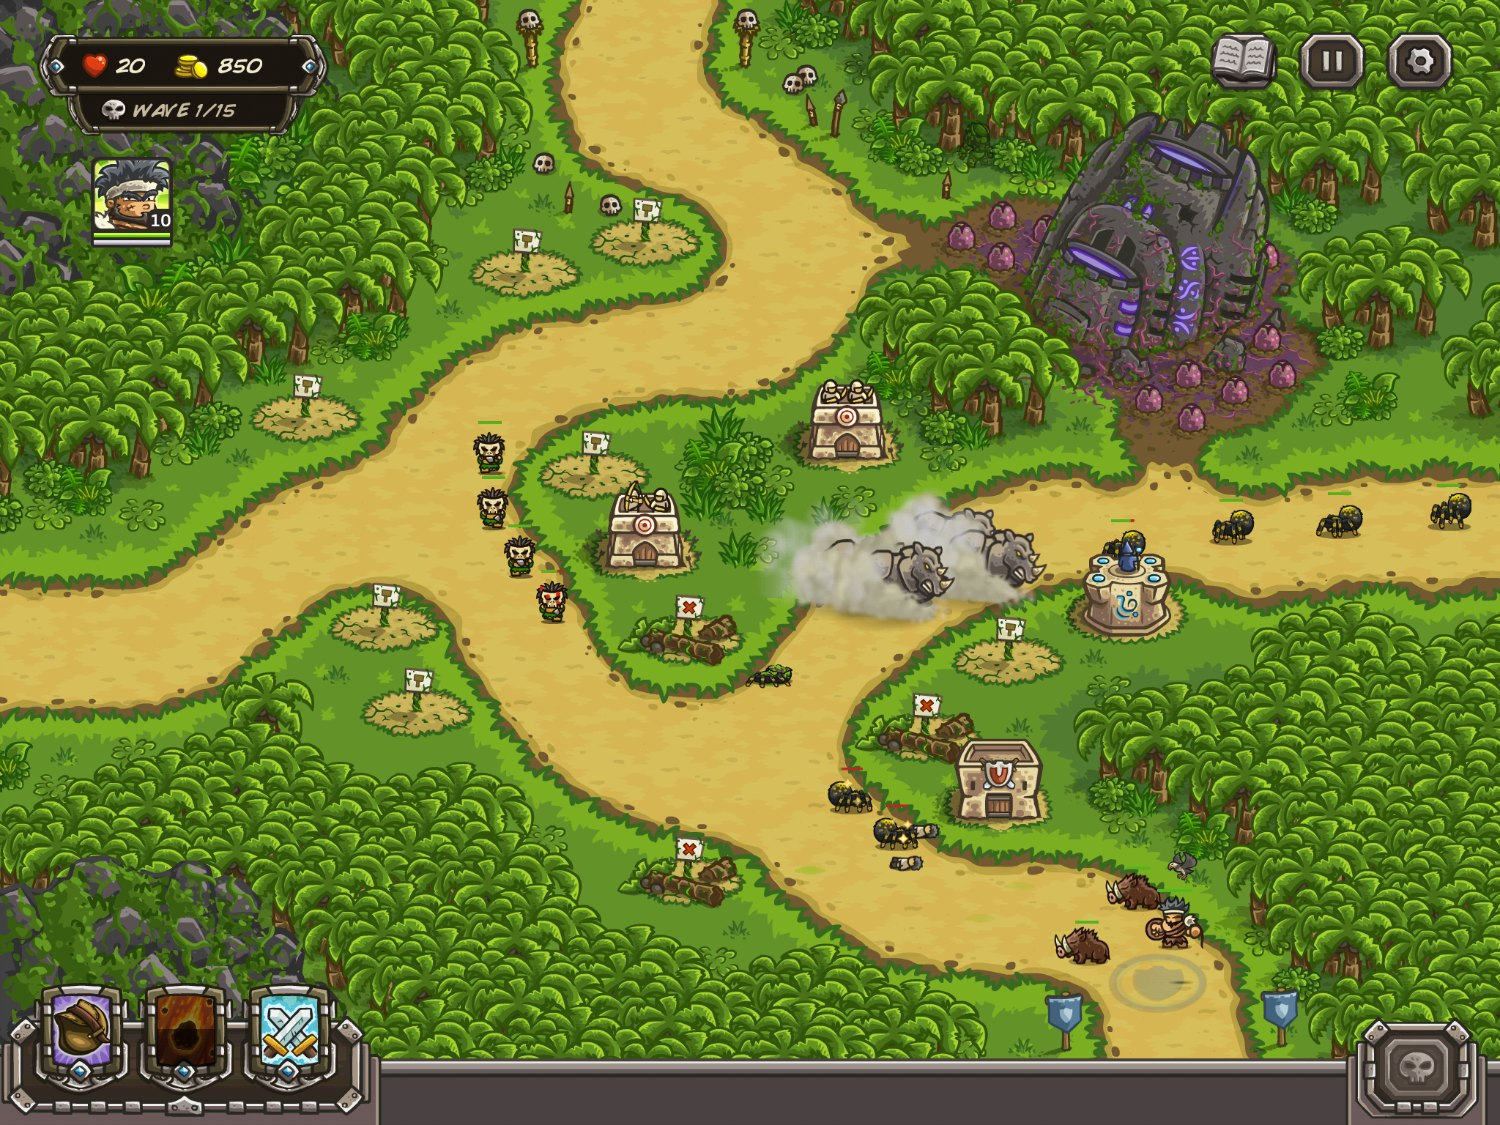 Kingdom rush frontiers review - Photo